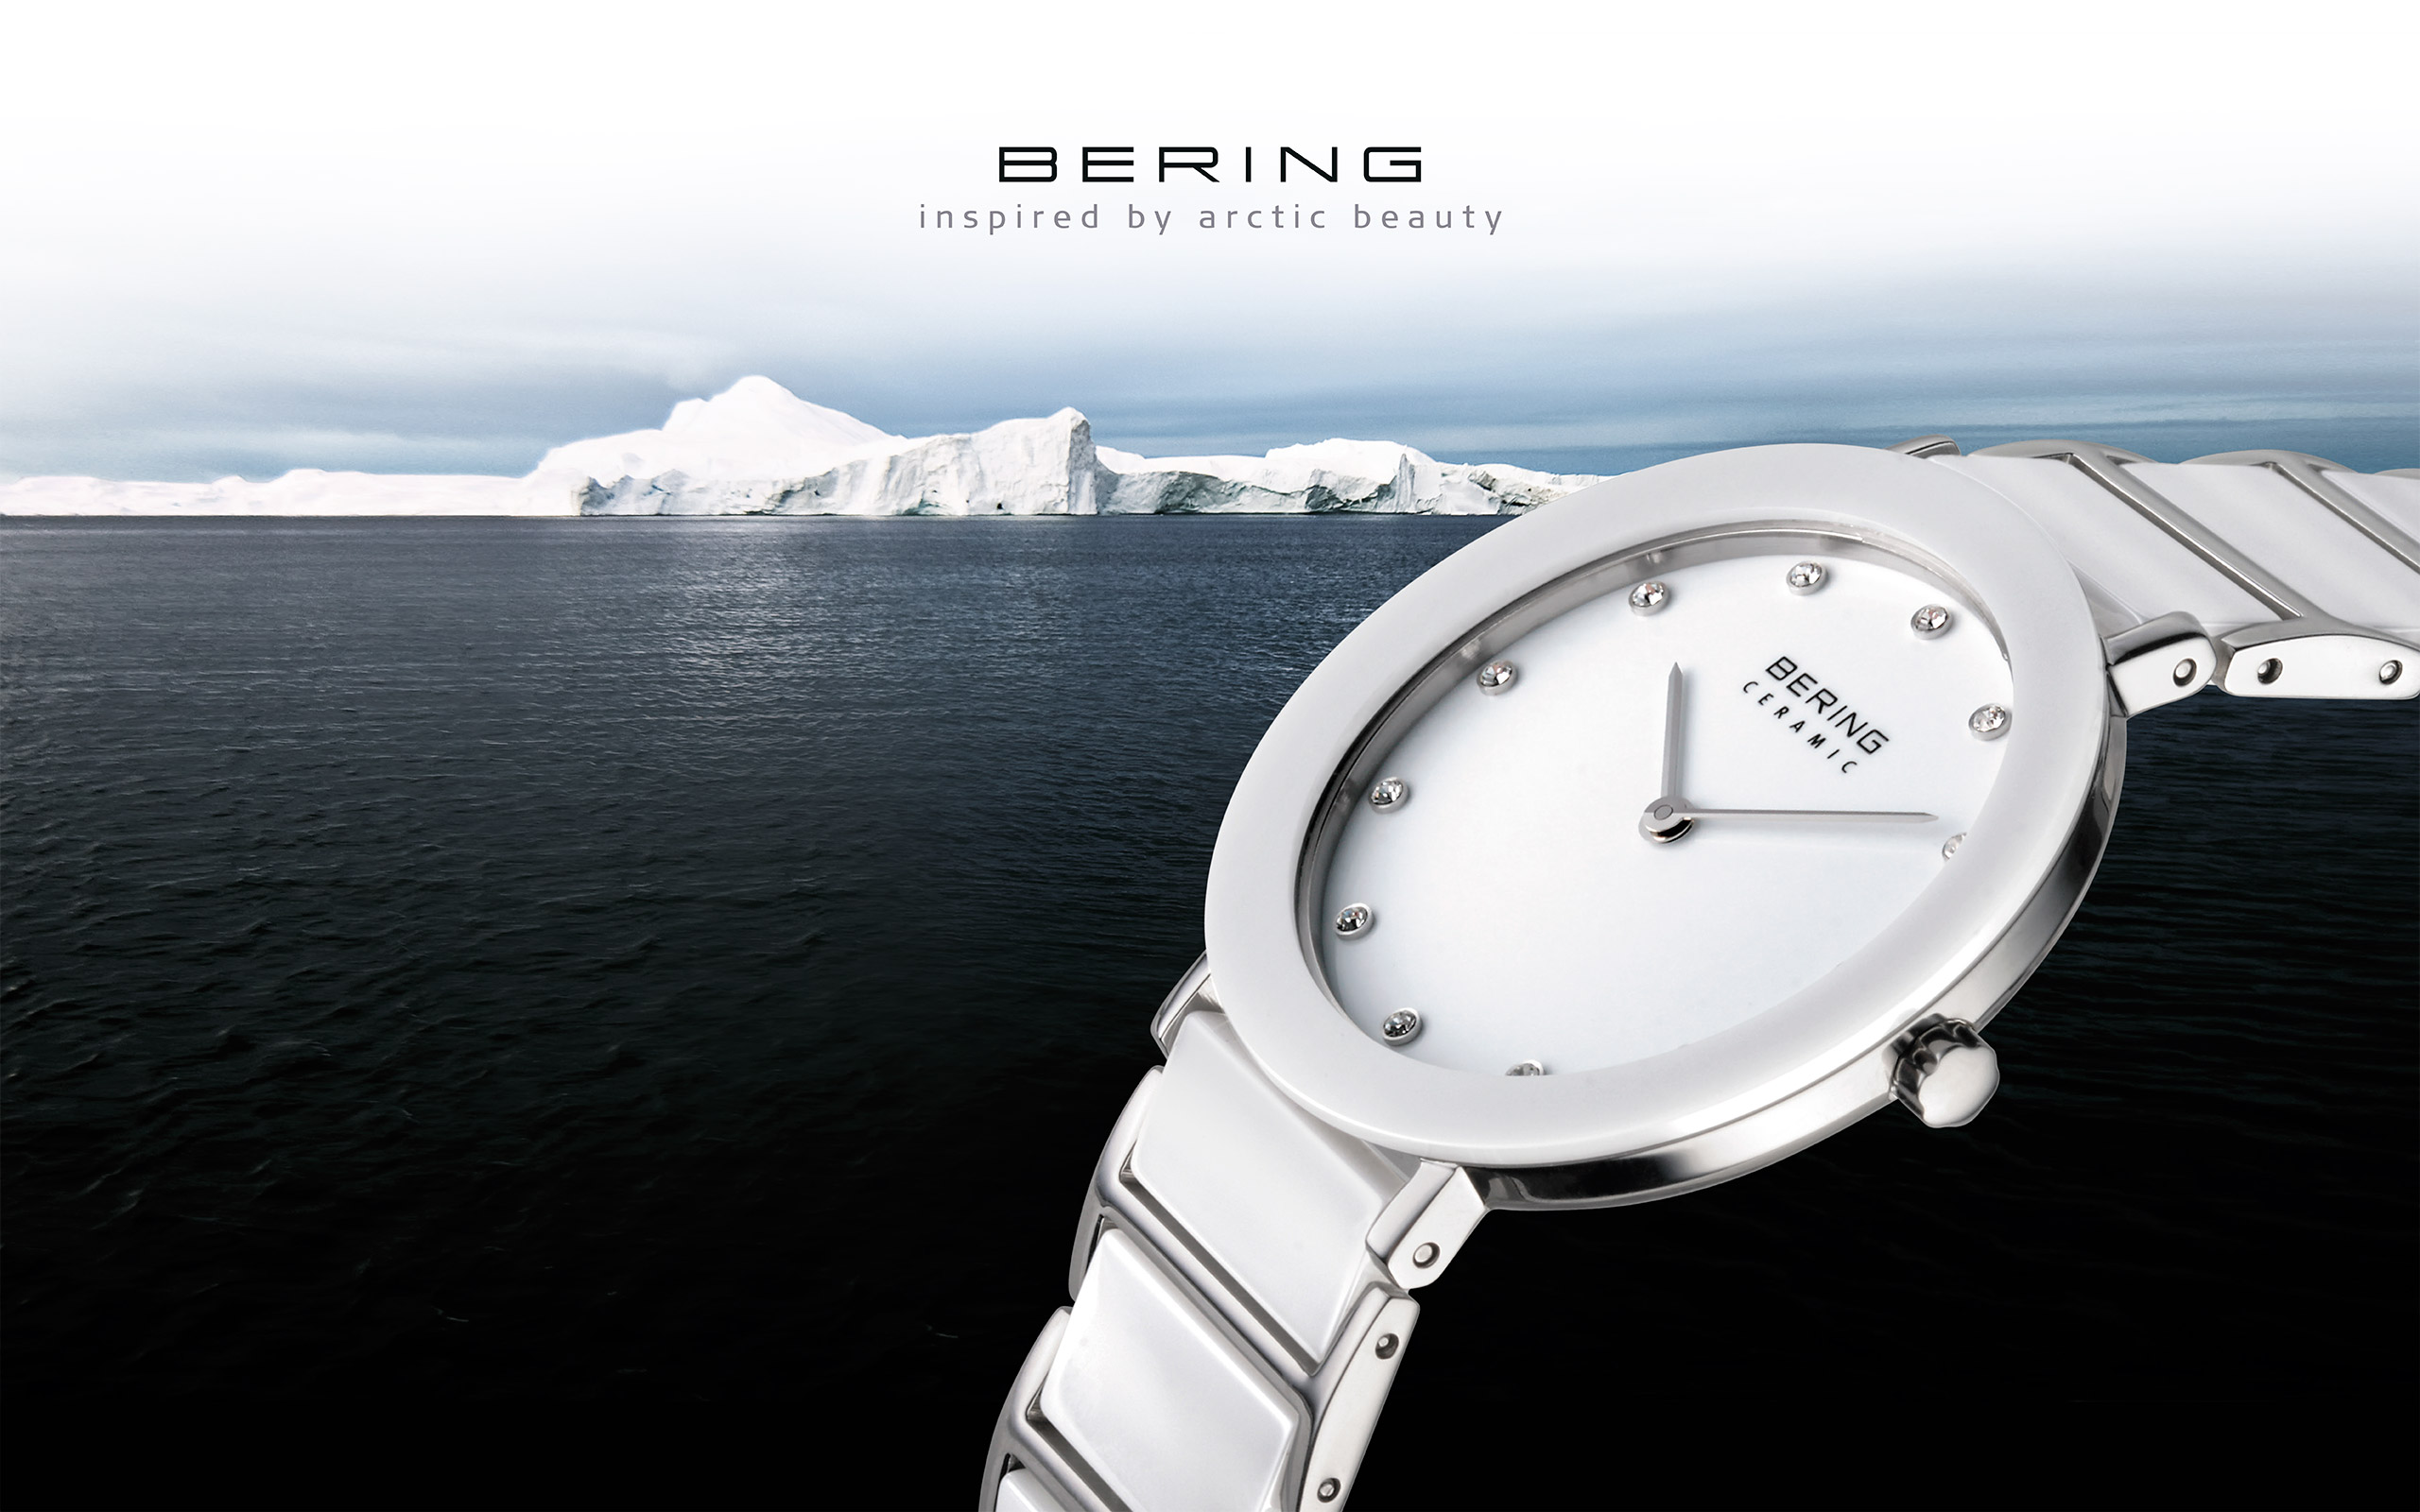 BERING_wallpaper_2560x1600_1-2.jpg